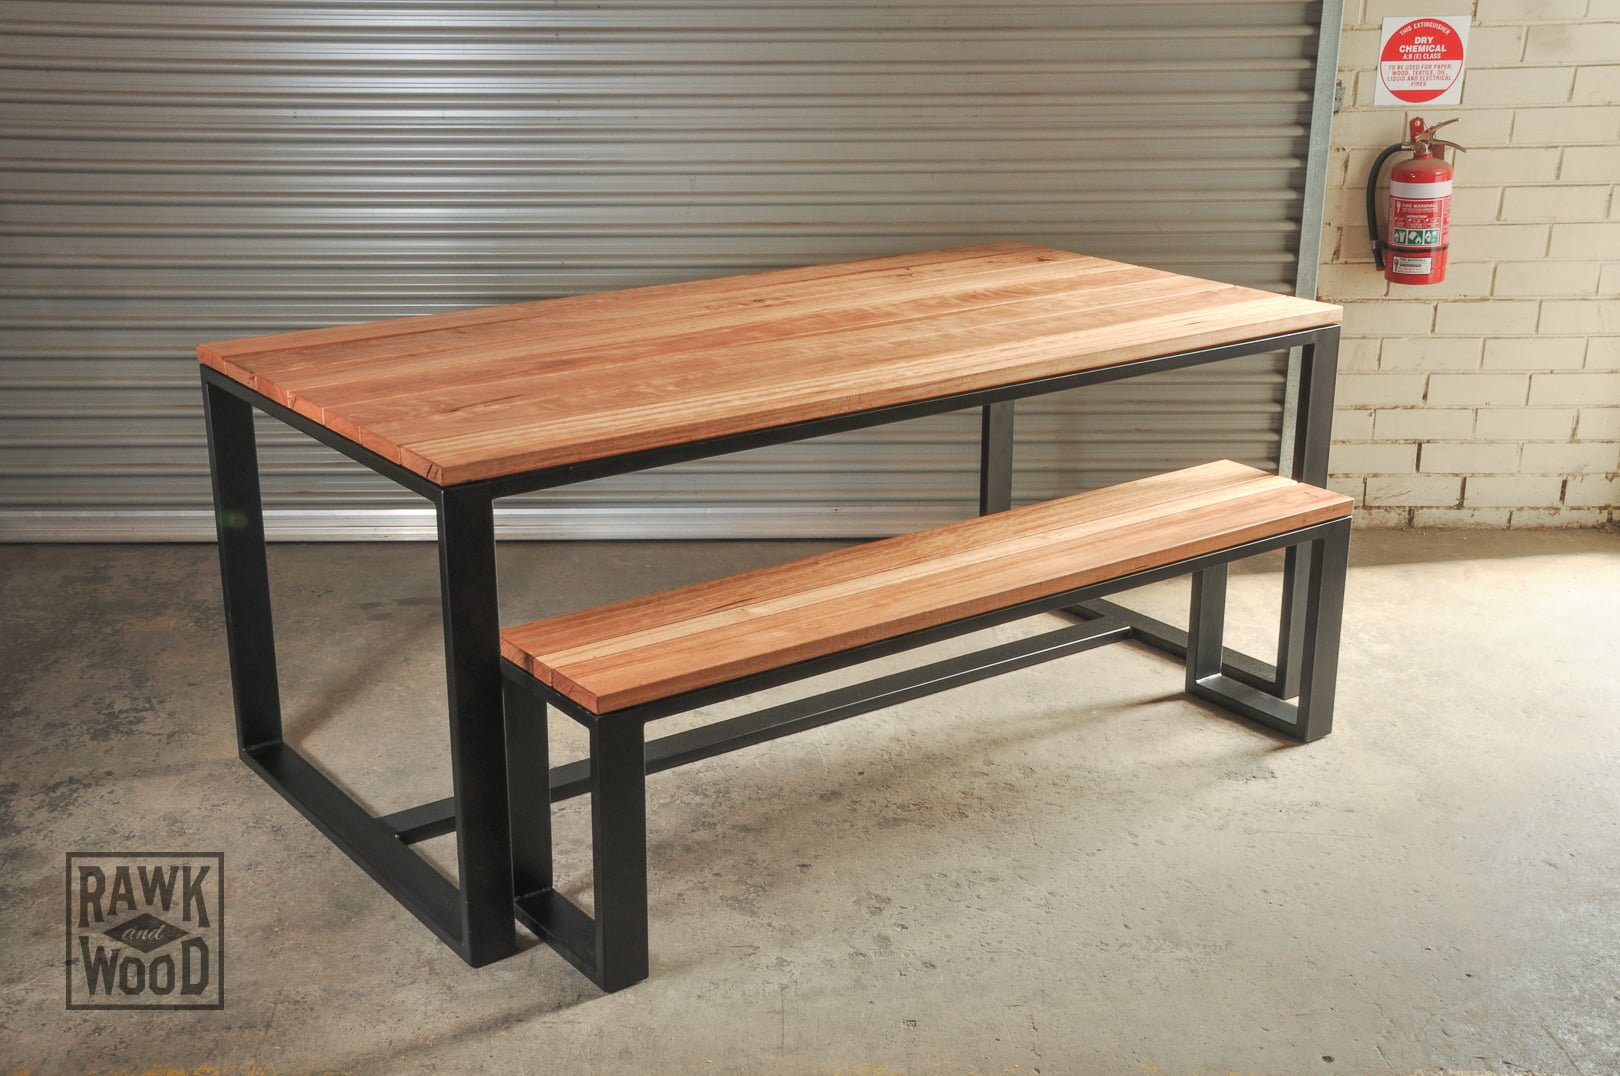 100 Outdoor Setting Galets Dining Benchoutdoor  : Recycled Timber Outdoor Setting 2 from 45.76.66.238 size 1620 x 1076 jpeg 940kB